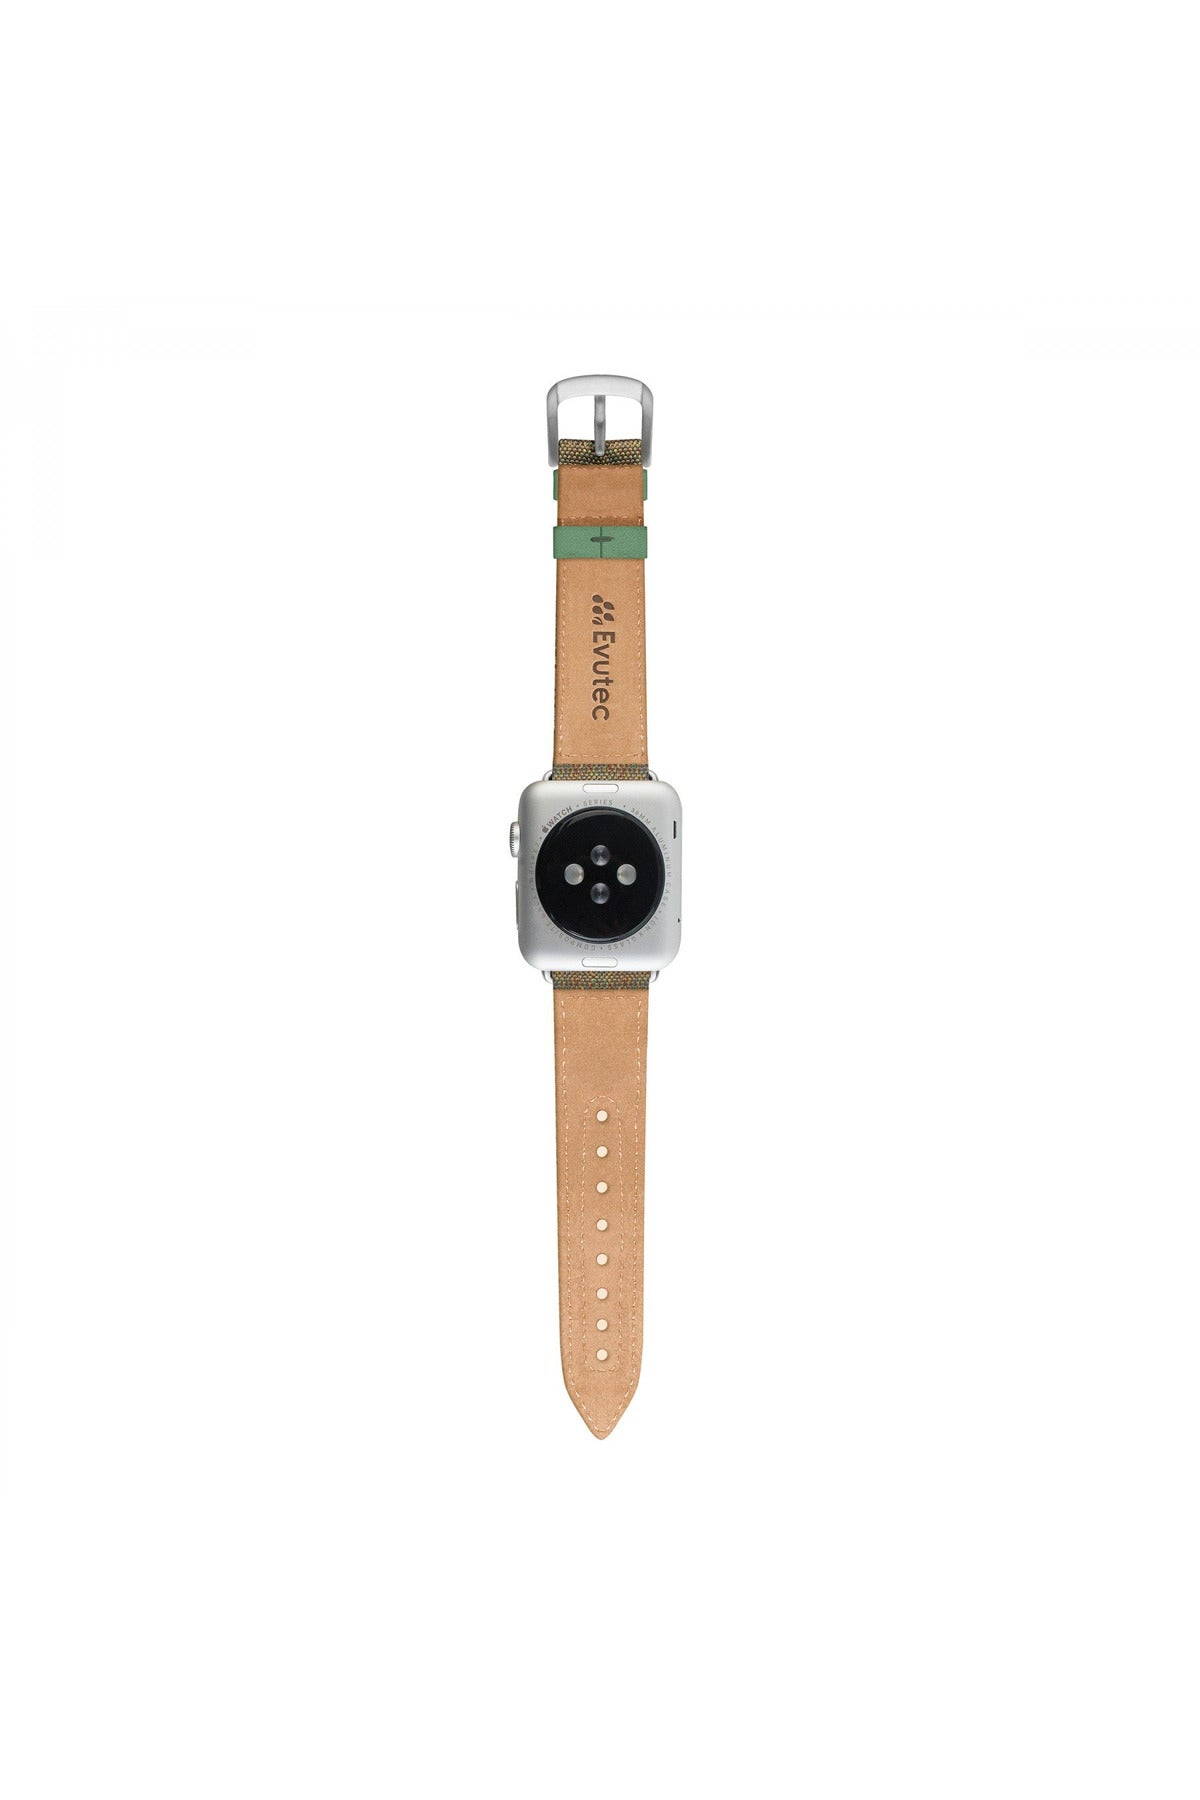 Evutec Northill Series Apple Watch Band 38MM & 40MM - Chroma/Sage (WB-A13-38-D10) - www.emarketkw.com